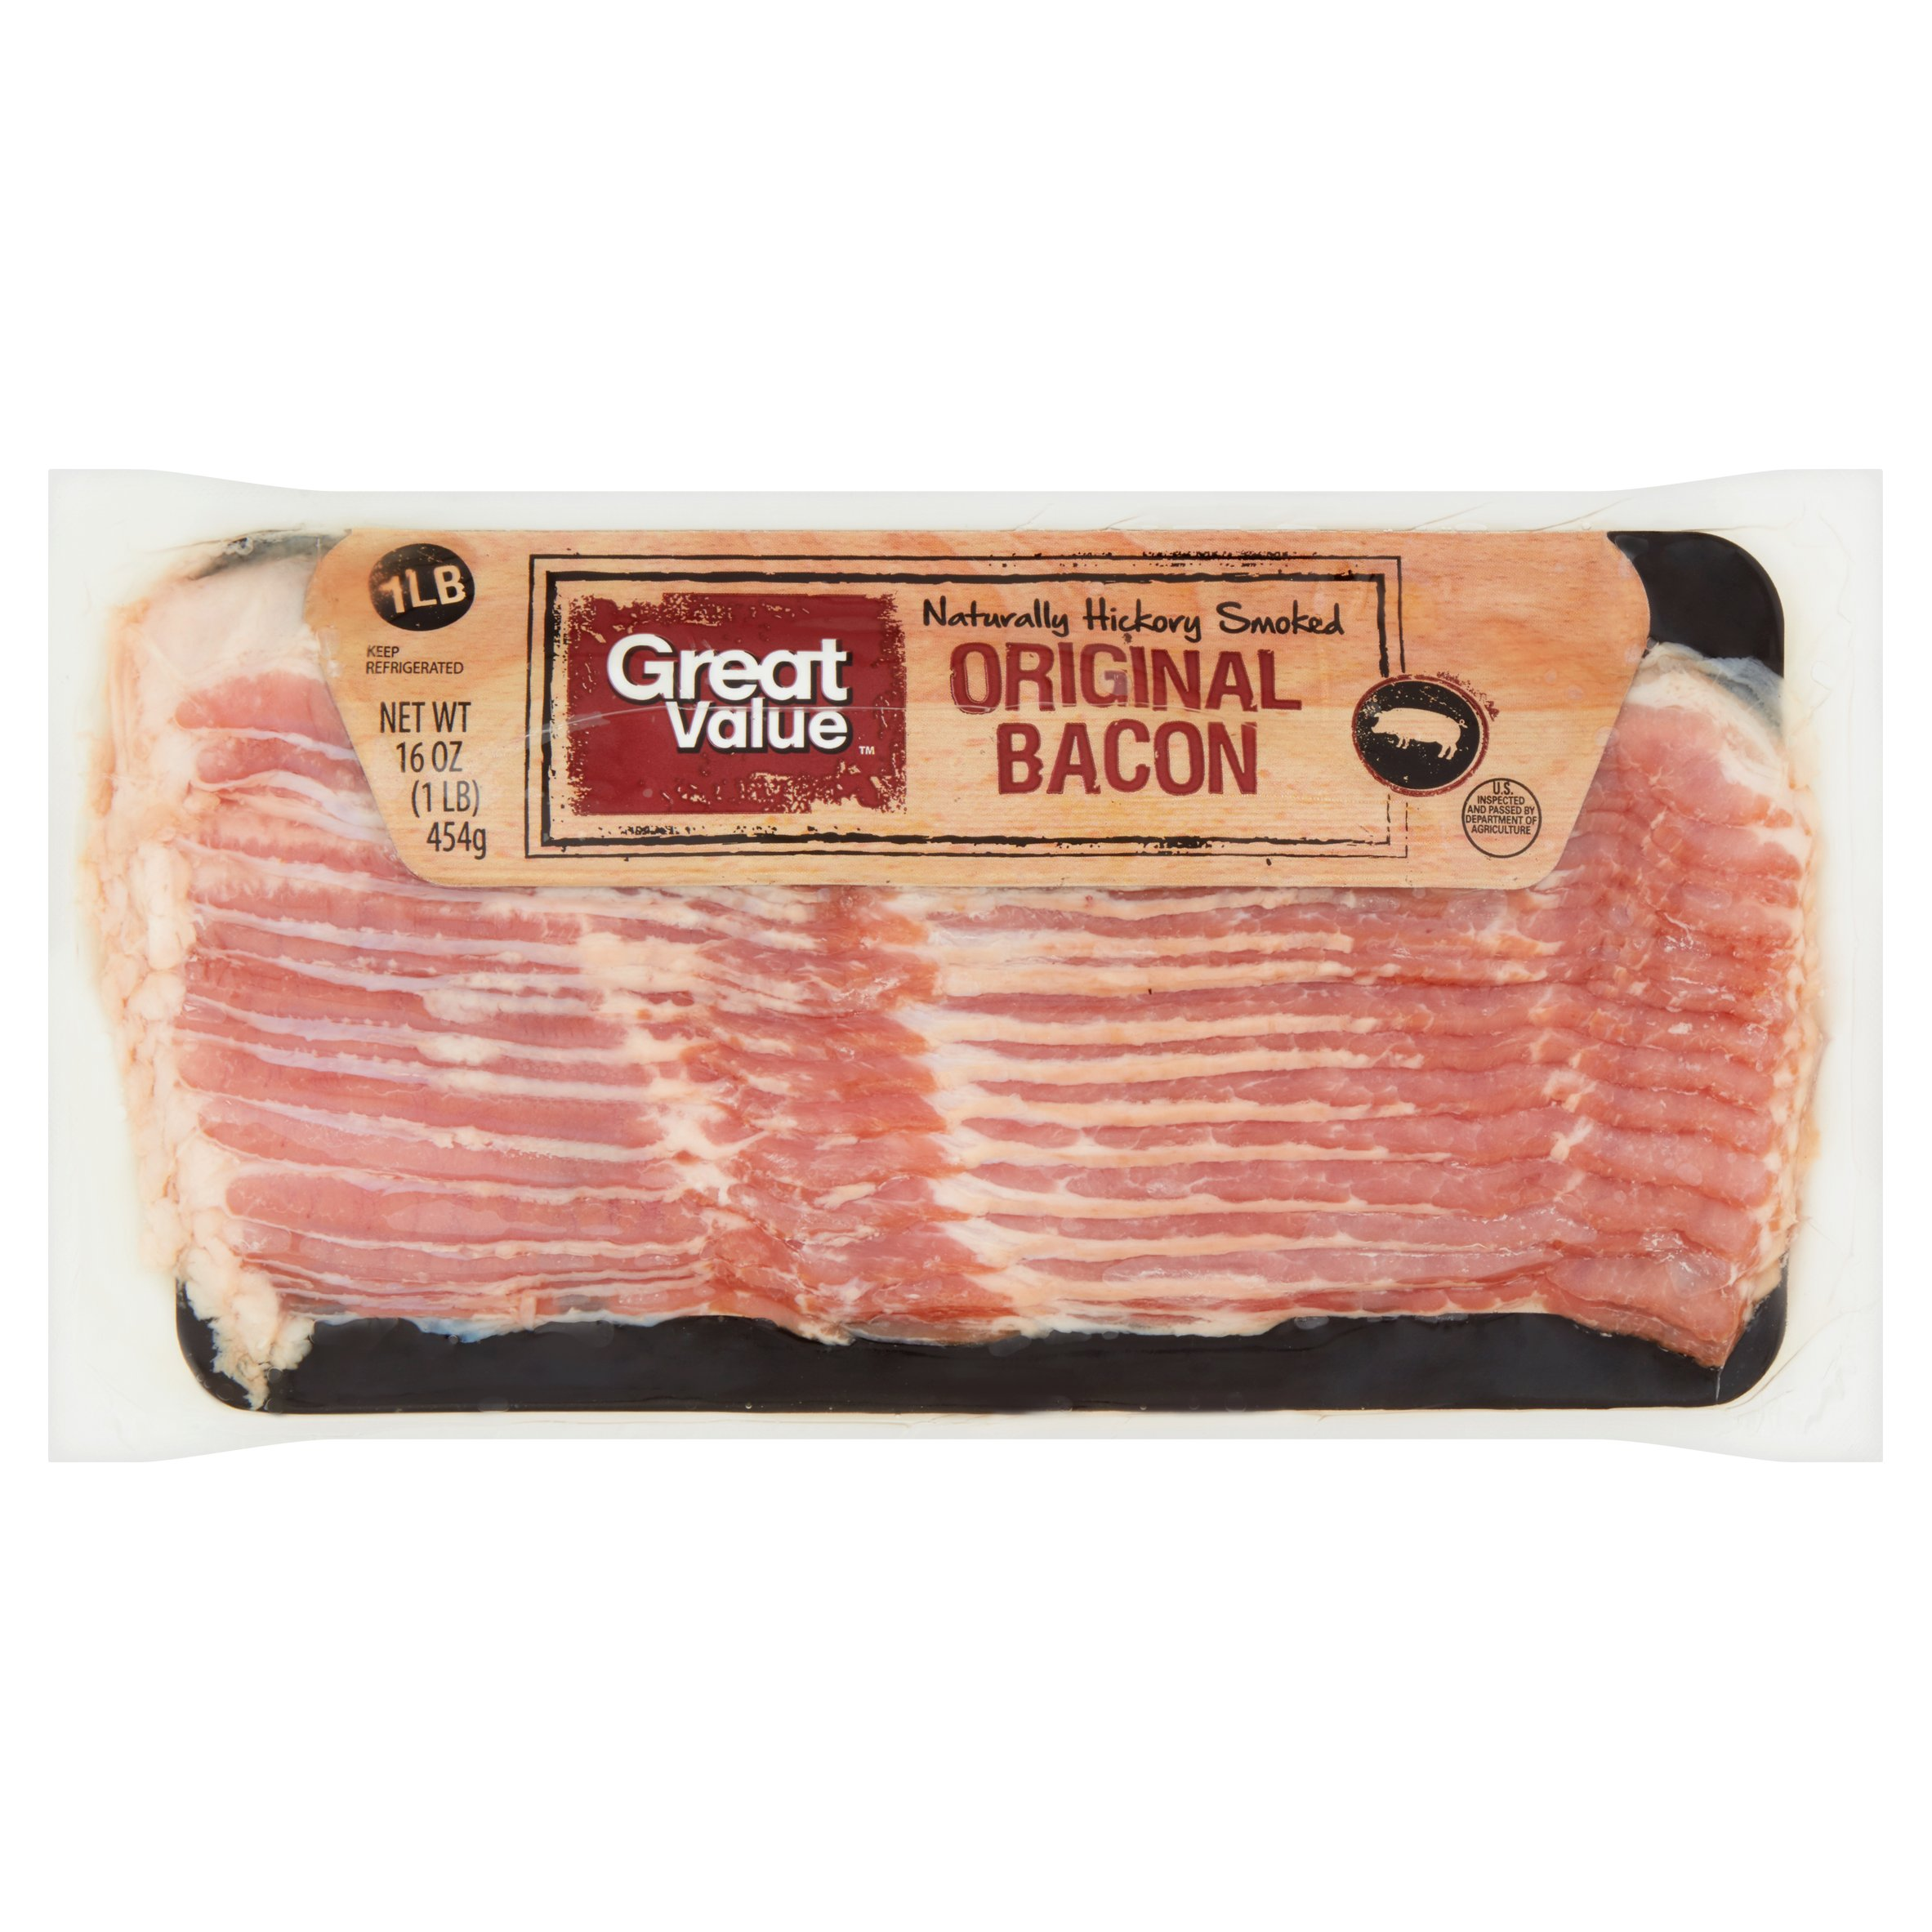 Great Value Naturally Hickory Smoked Original Bacon, 16 oz by Wal-Mart Stores, Inc.